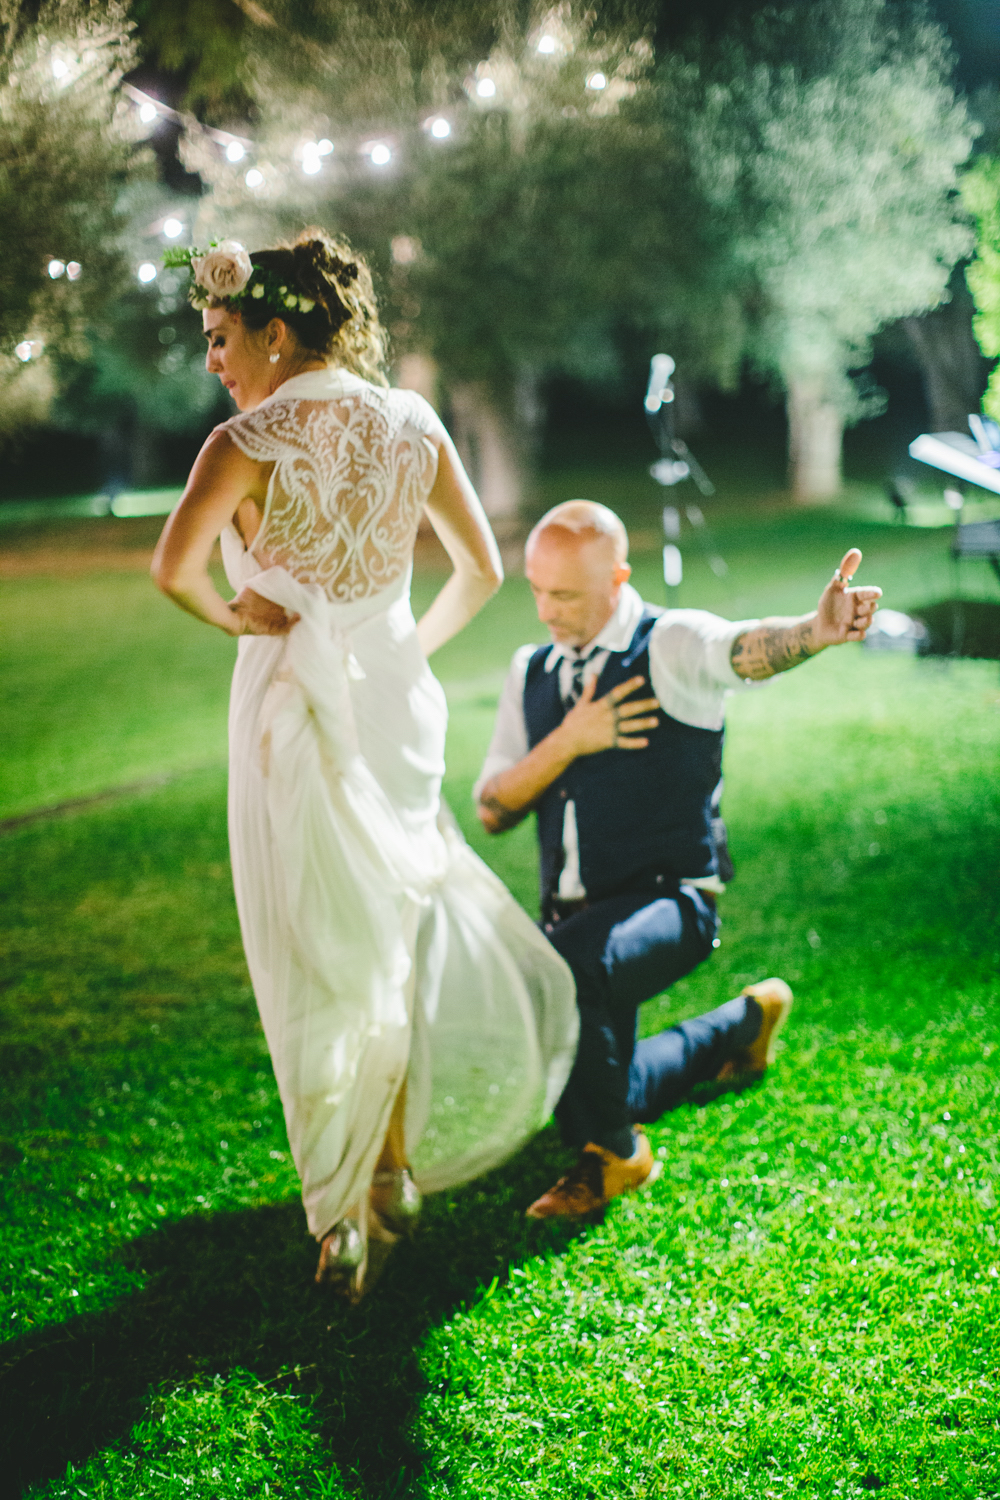 Les Amis Photo_Destination Wedding Photographer_Wedding in Puglia_BARMIC_15_768.jpg